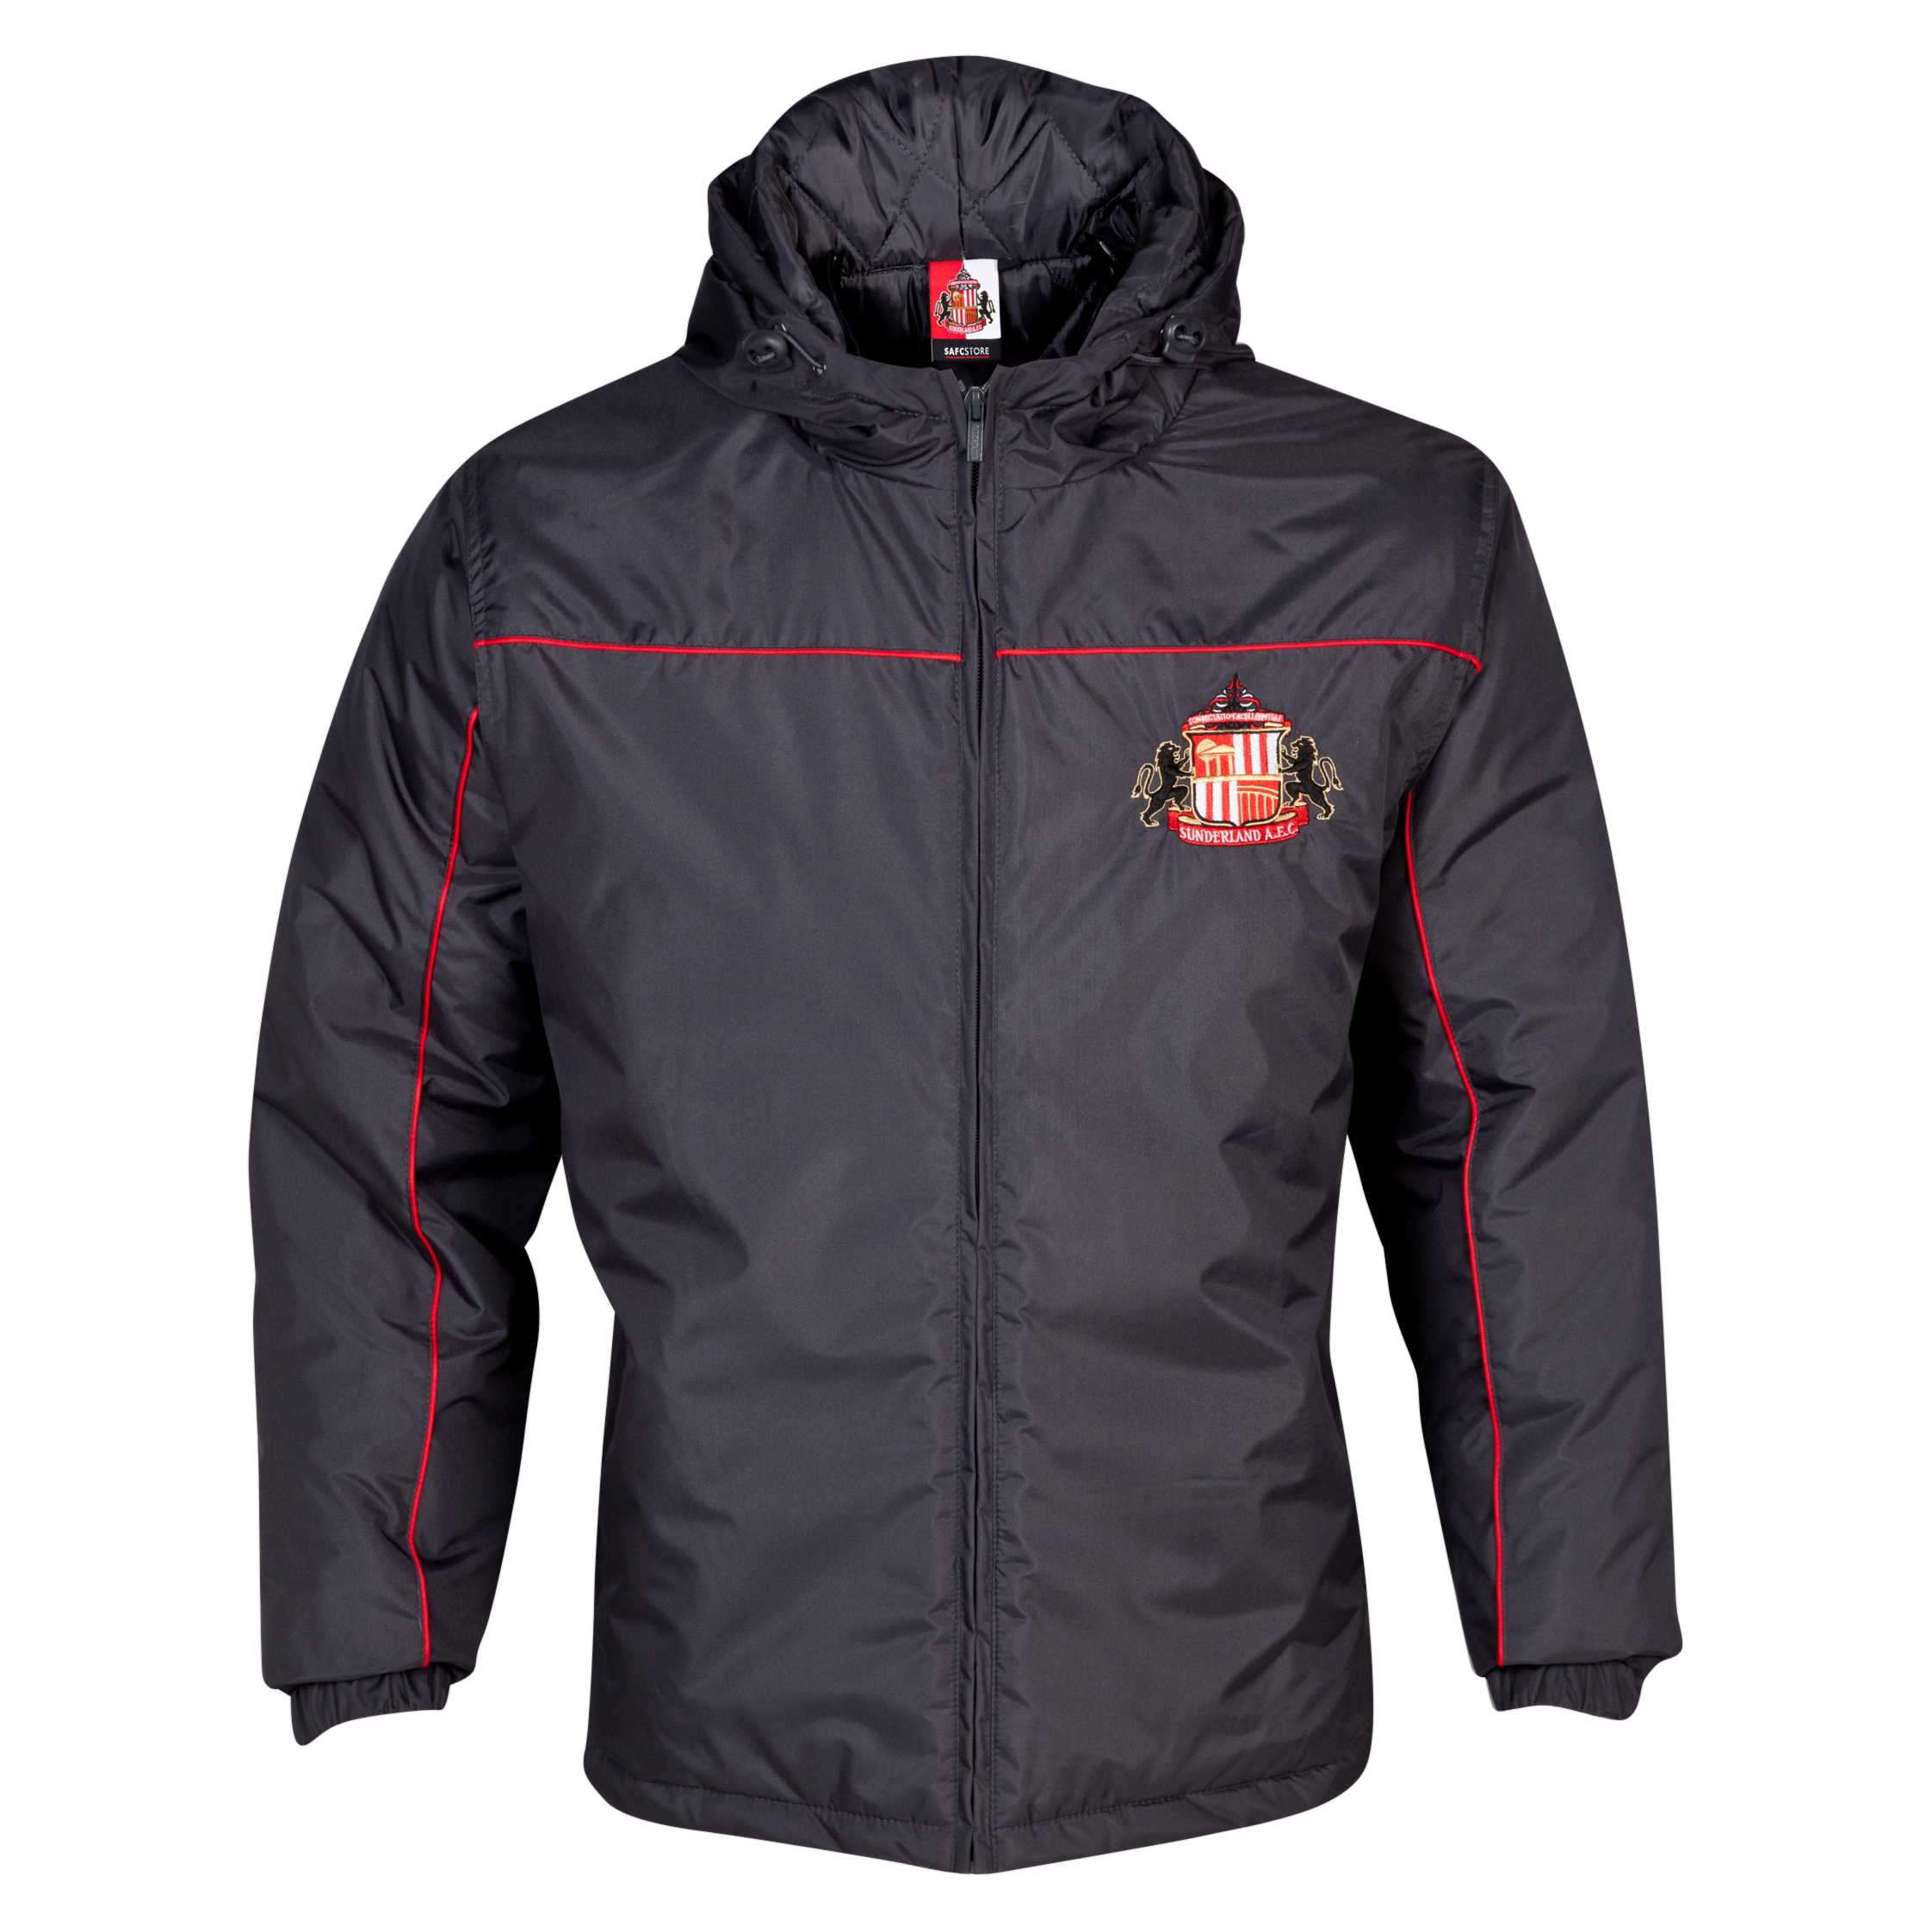 Sunderland Essentials Match Coat - Older Boys Dk Grey